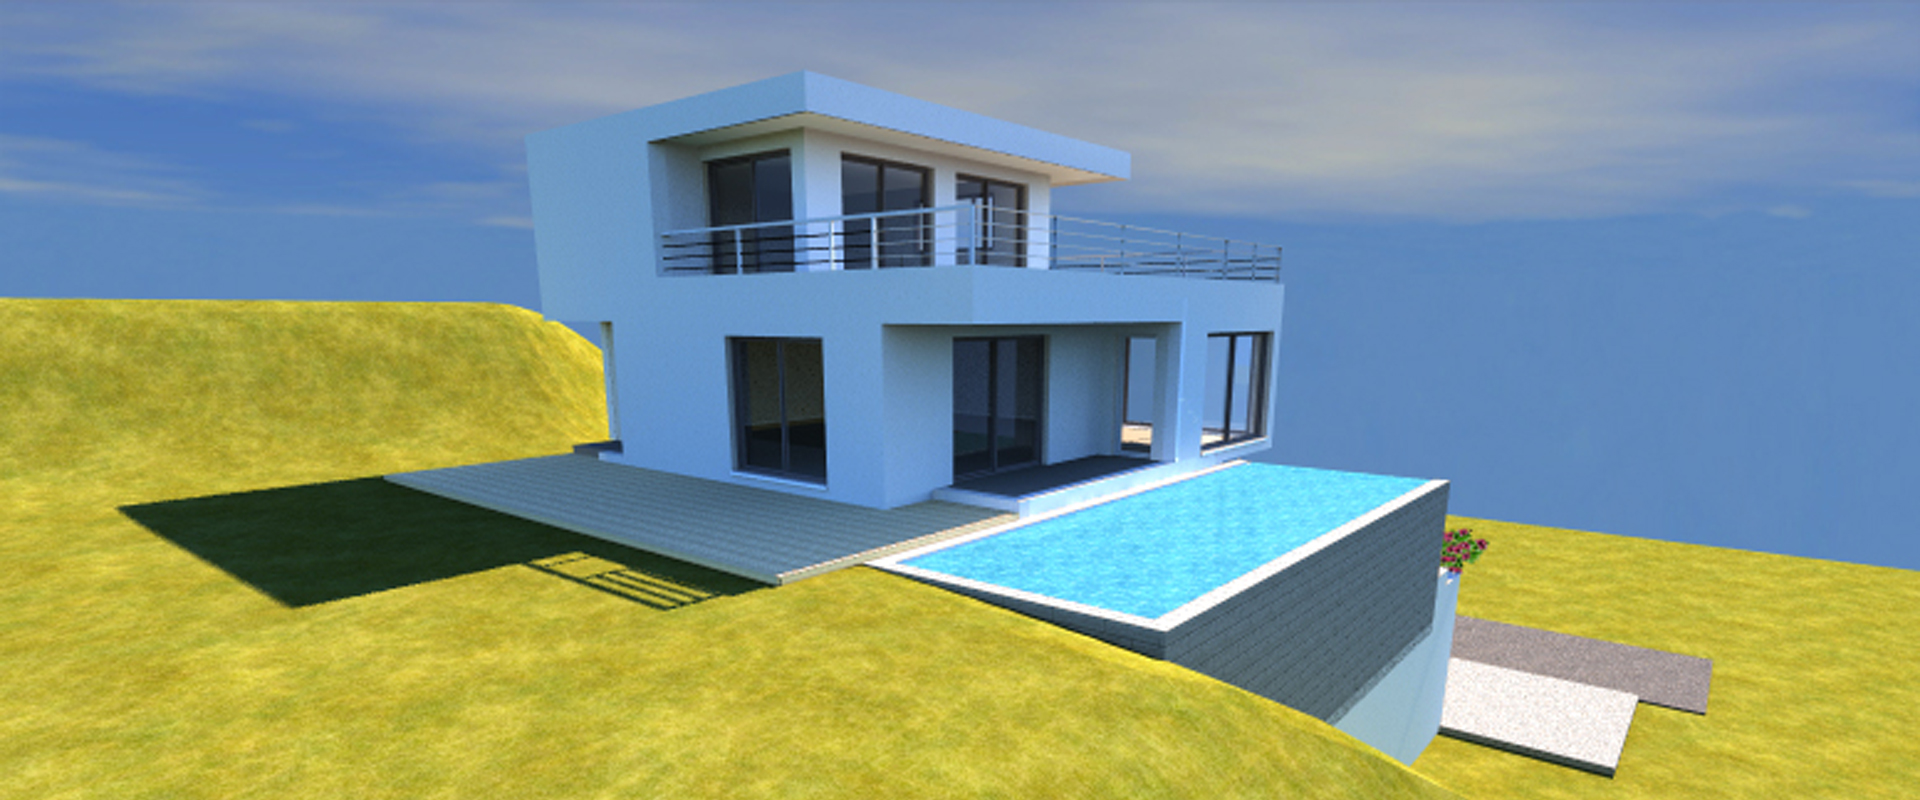 Conception 3d d un plan de maison avec piscine d bordement for Maison 3 d